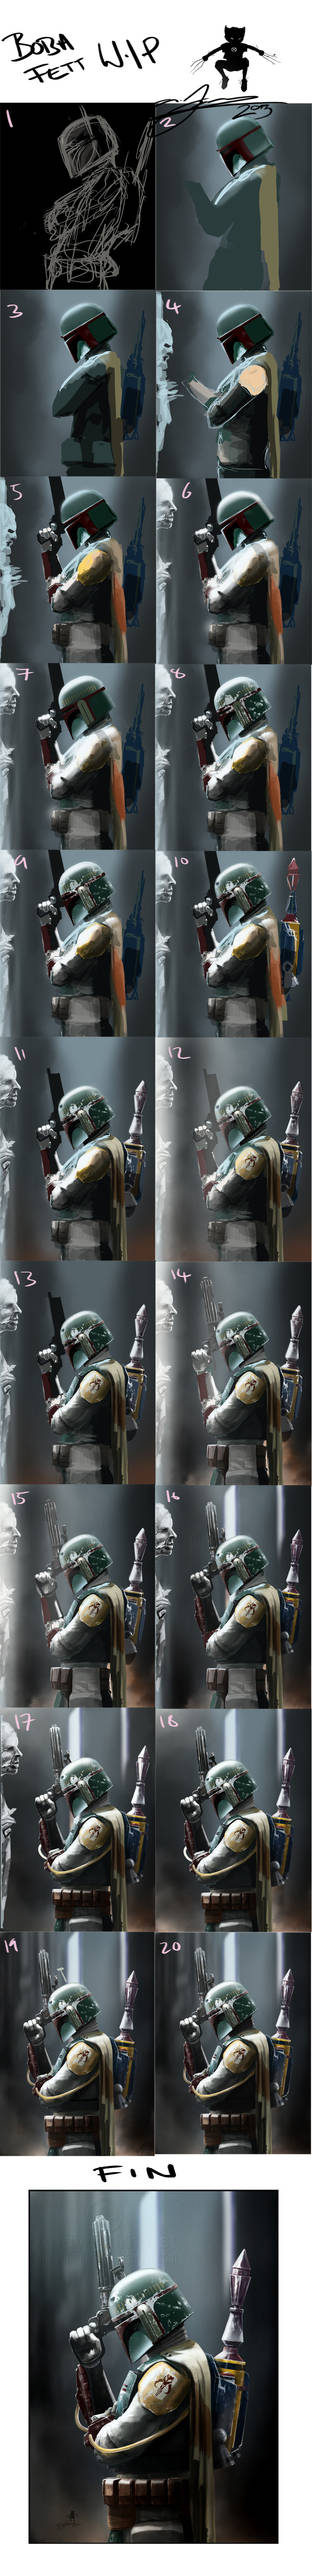 Boba Fett : Bounty Hunter W.I.P Stages